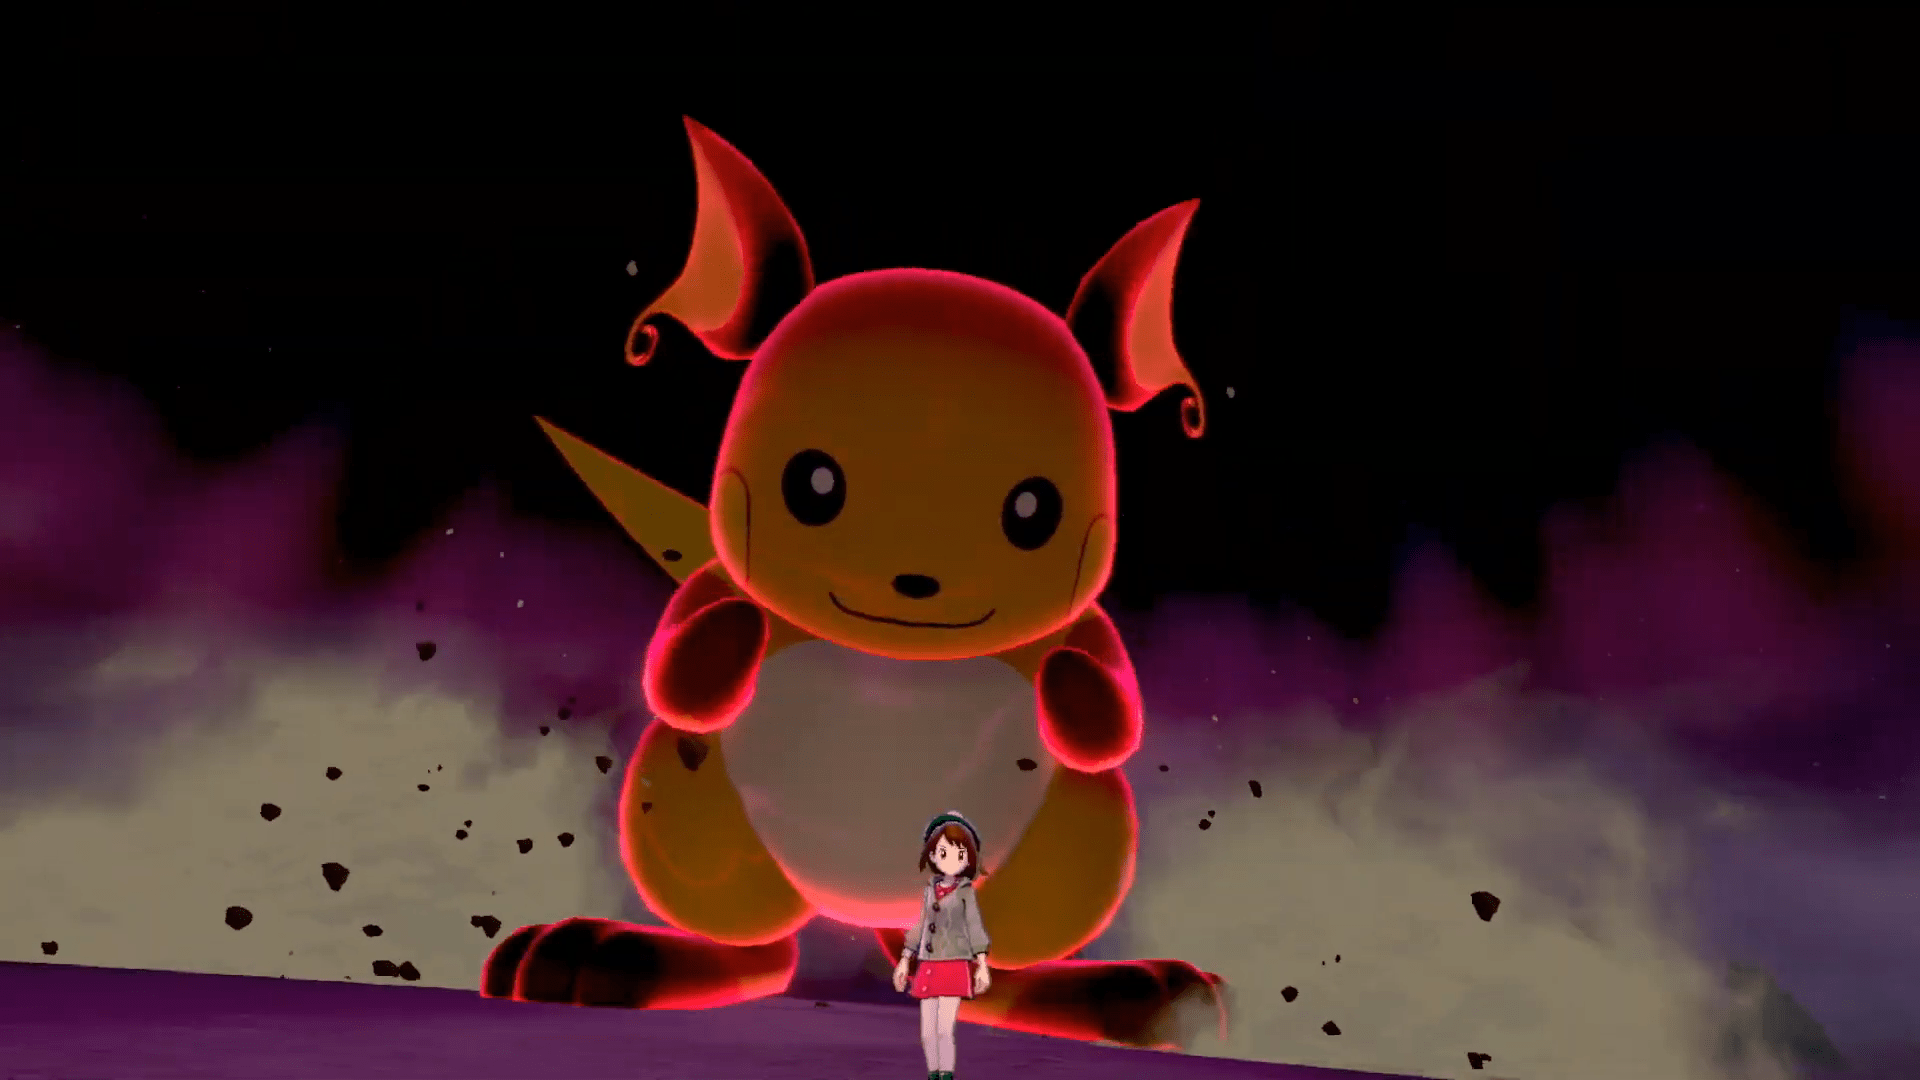 Nintendo Direct Reveals New Information On Pokemon Sword And Shield